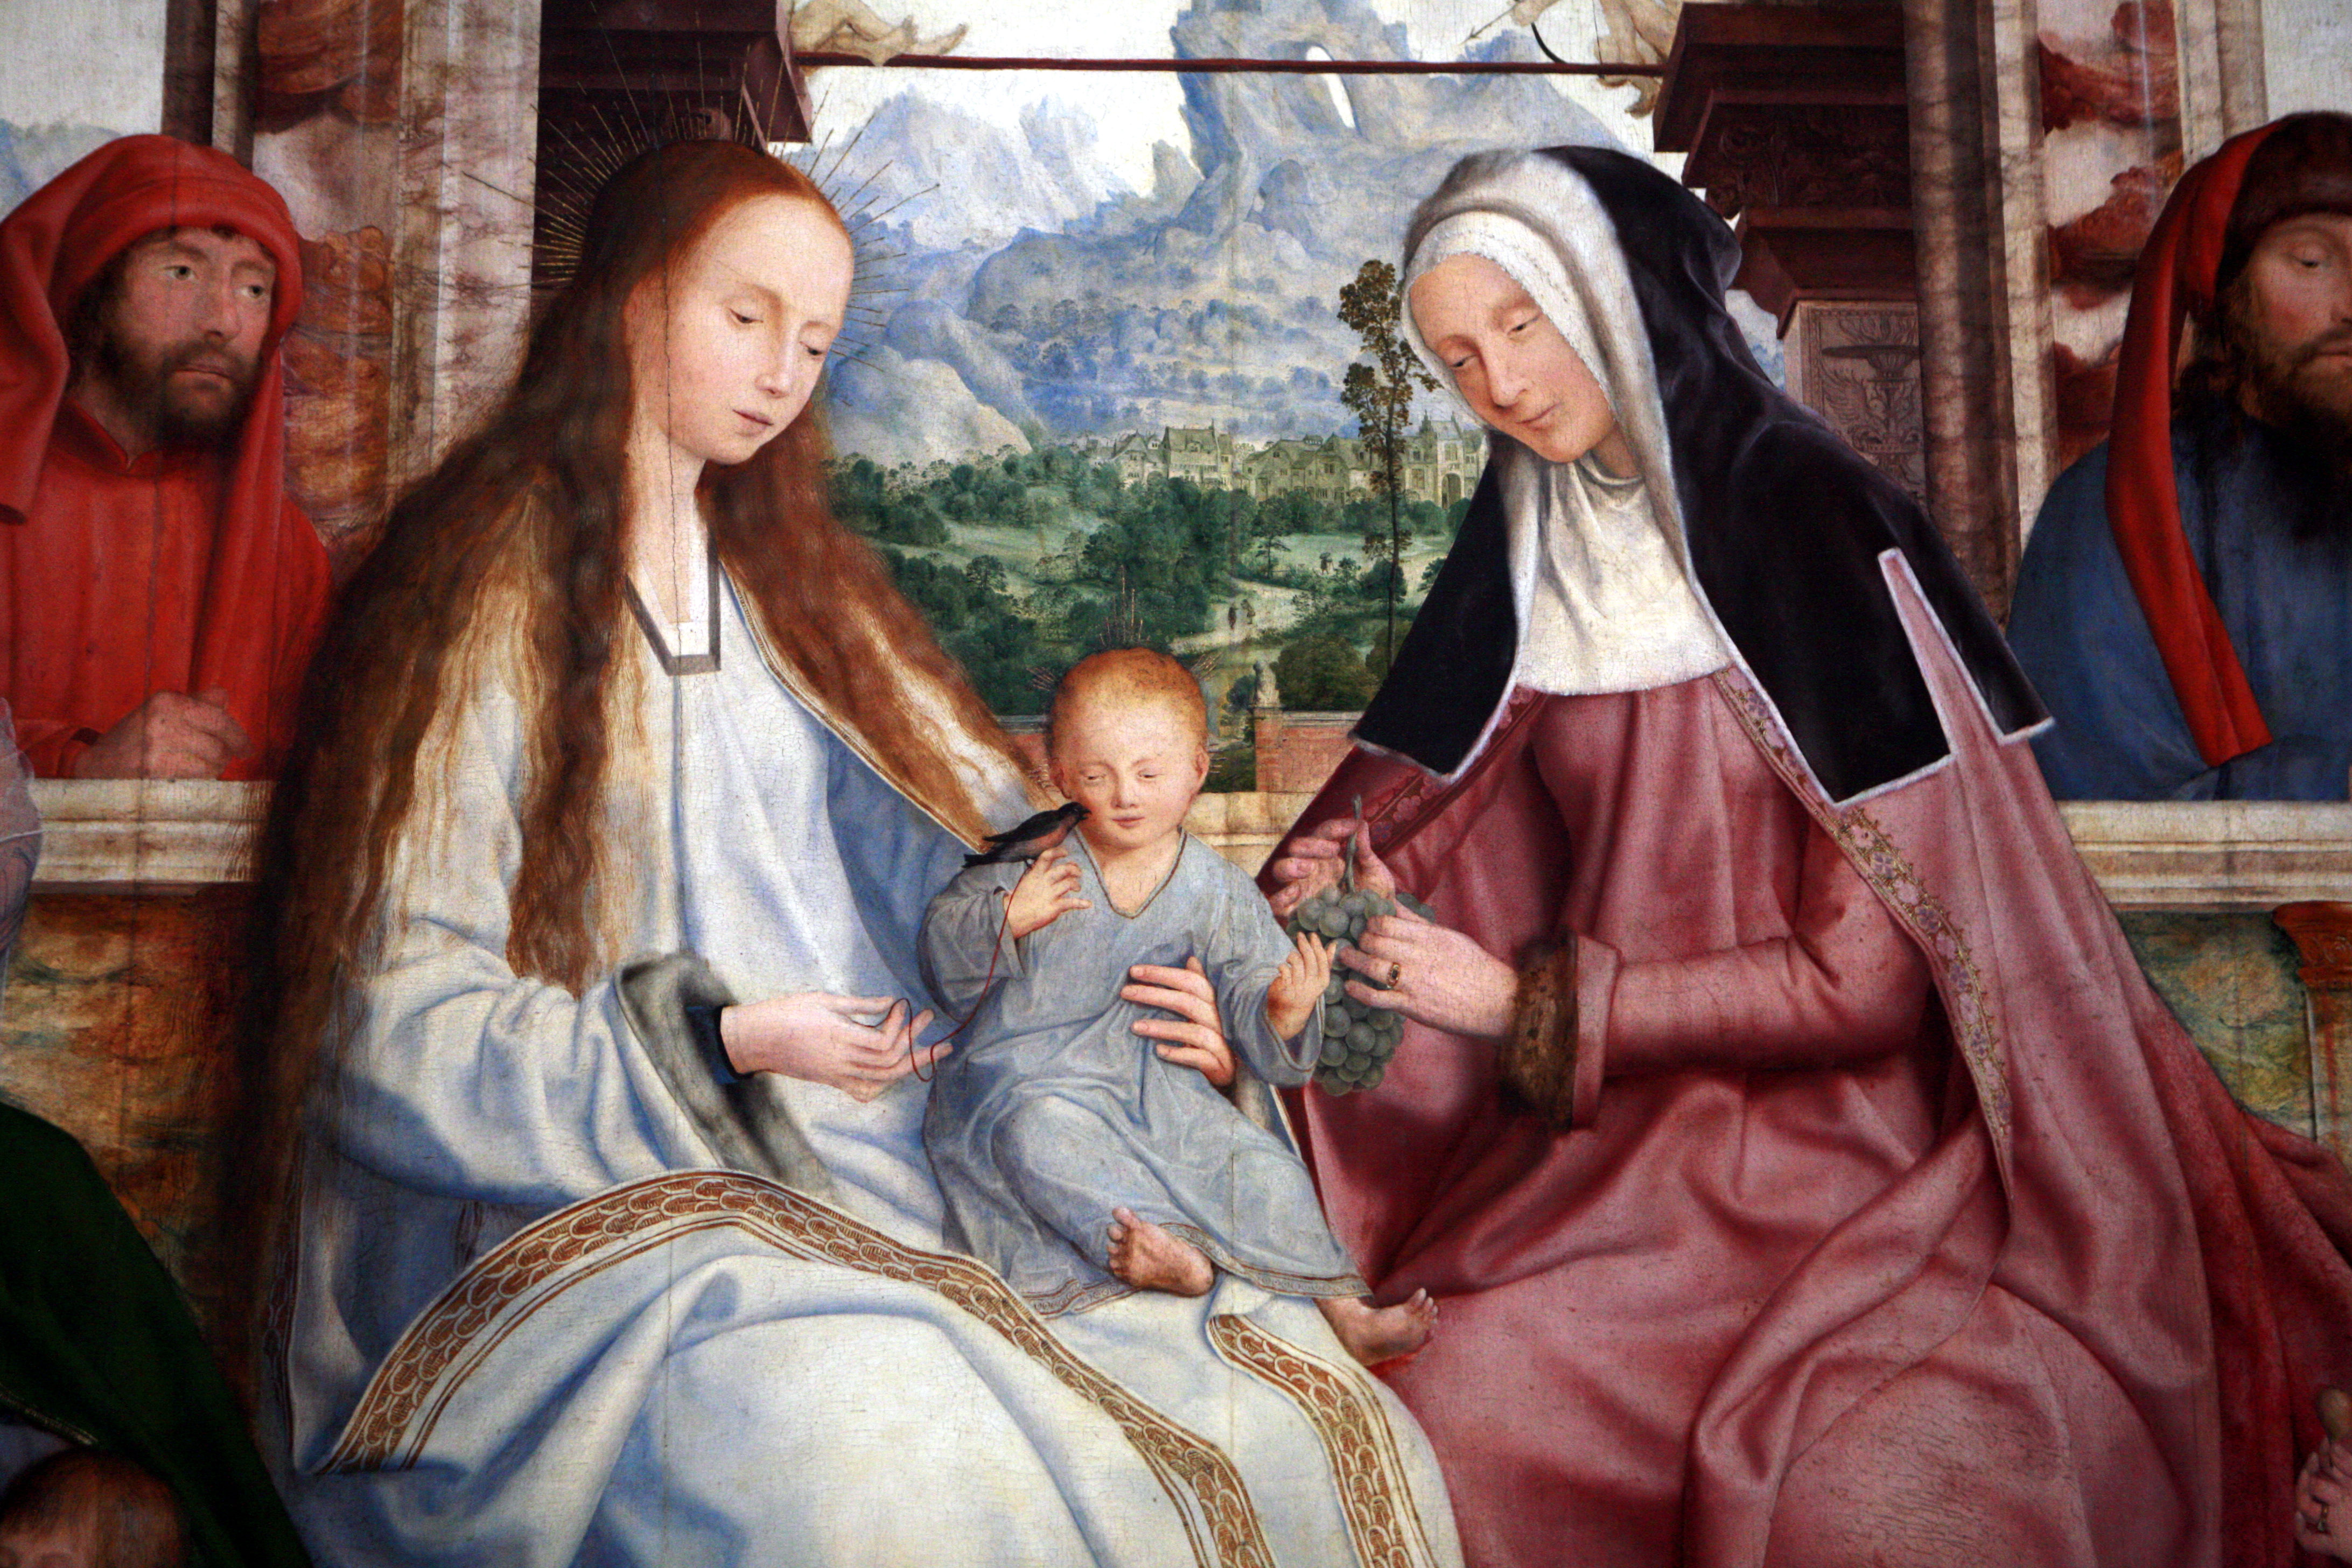 saint anne dating Google images the most comprehensive image search on the web.